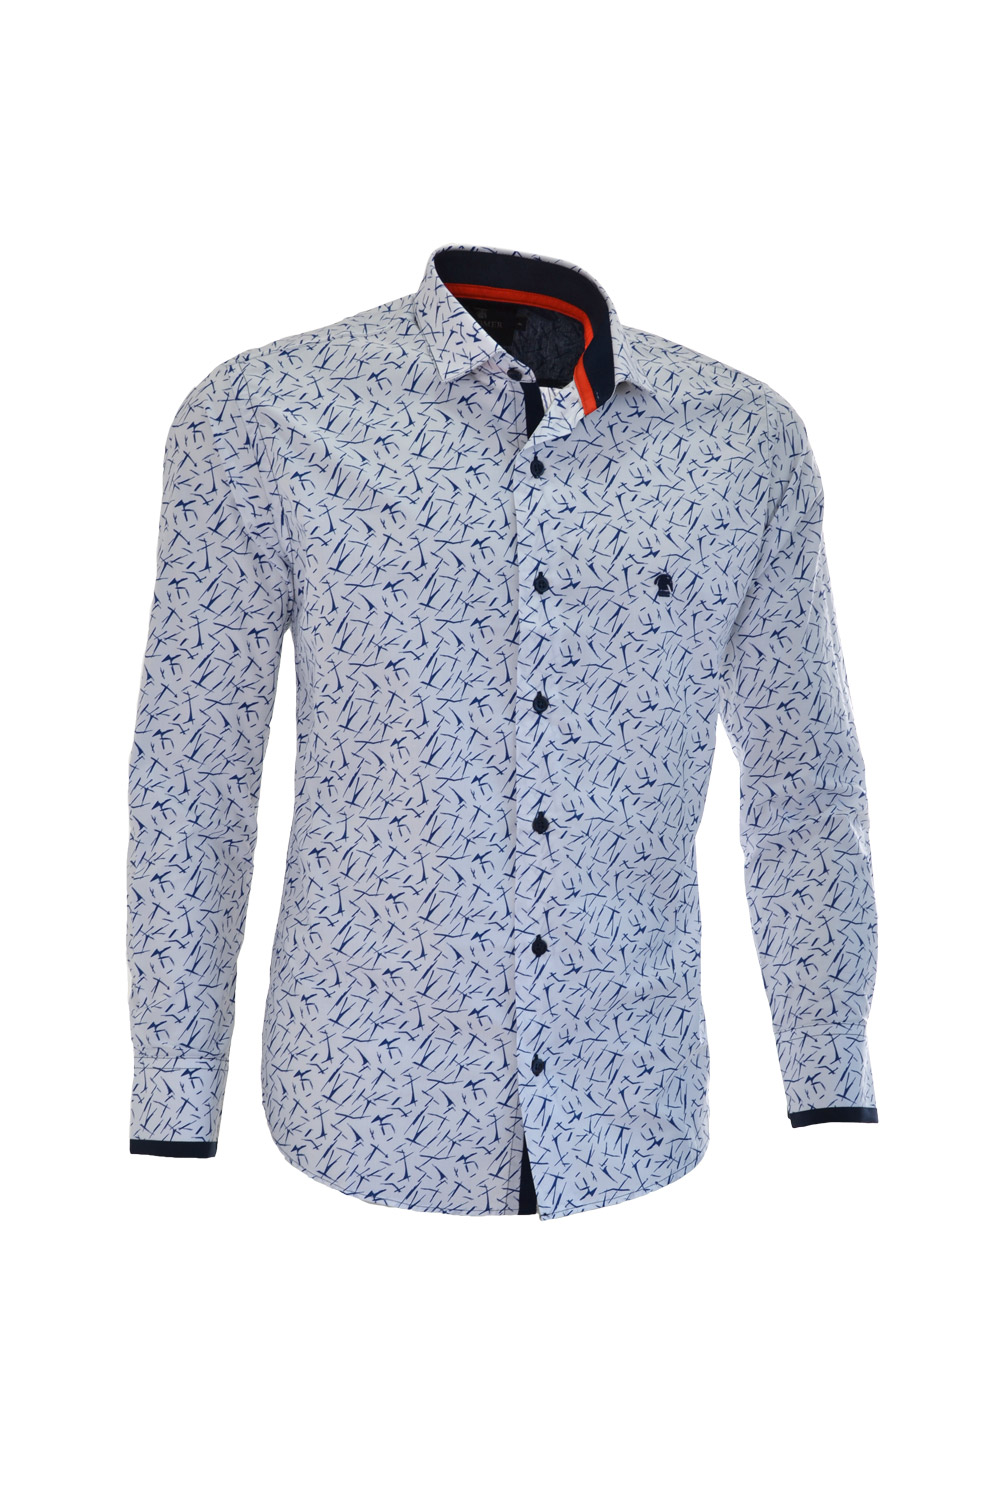 CAMISA ML FASHION SUPER SLIM ALGODAO FIO TINTO ESTAMPA BRANCO